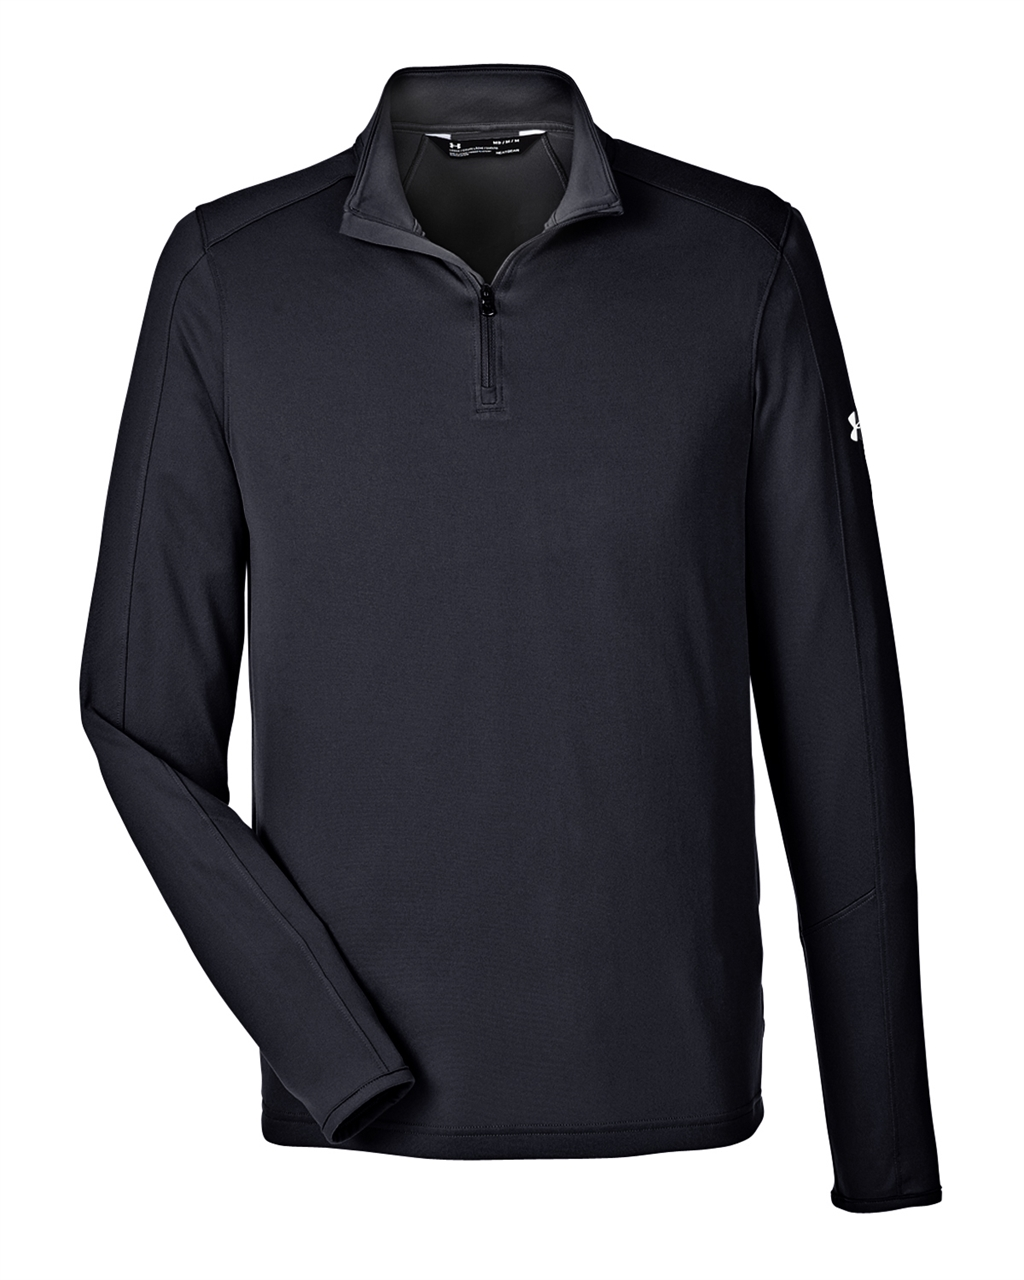 Picture of UNDER ARMOUR Men's Tech Quarter-Zip